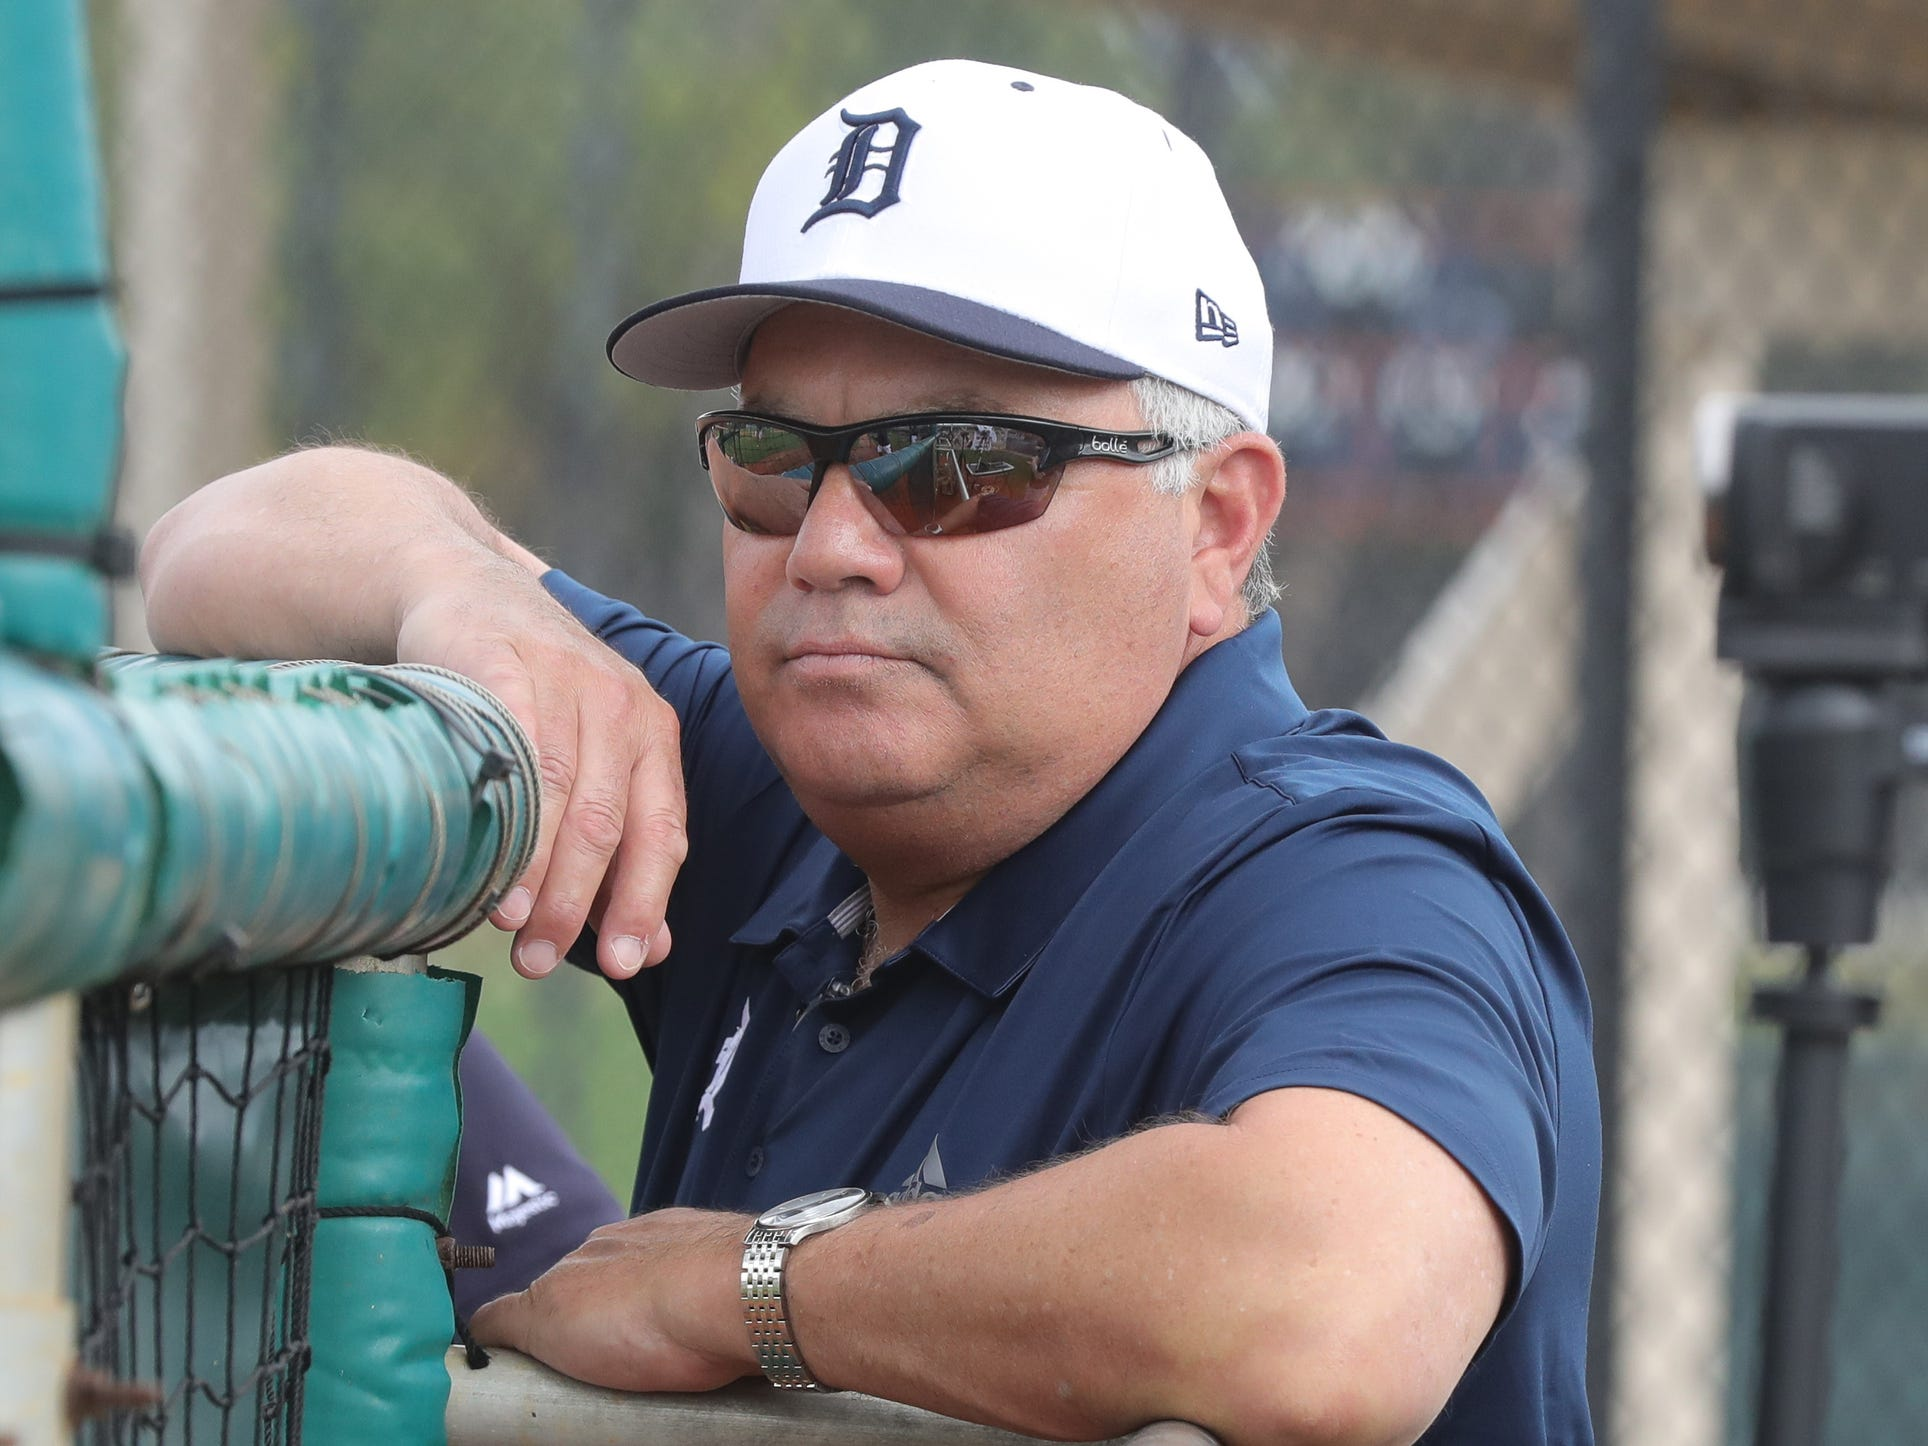 Tigers GM Al Avila watches the first full team spring training practice on Monday, Feb. 18, 2019, at Joker Marchant Stadium in Lakeland, Florida.